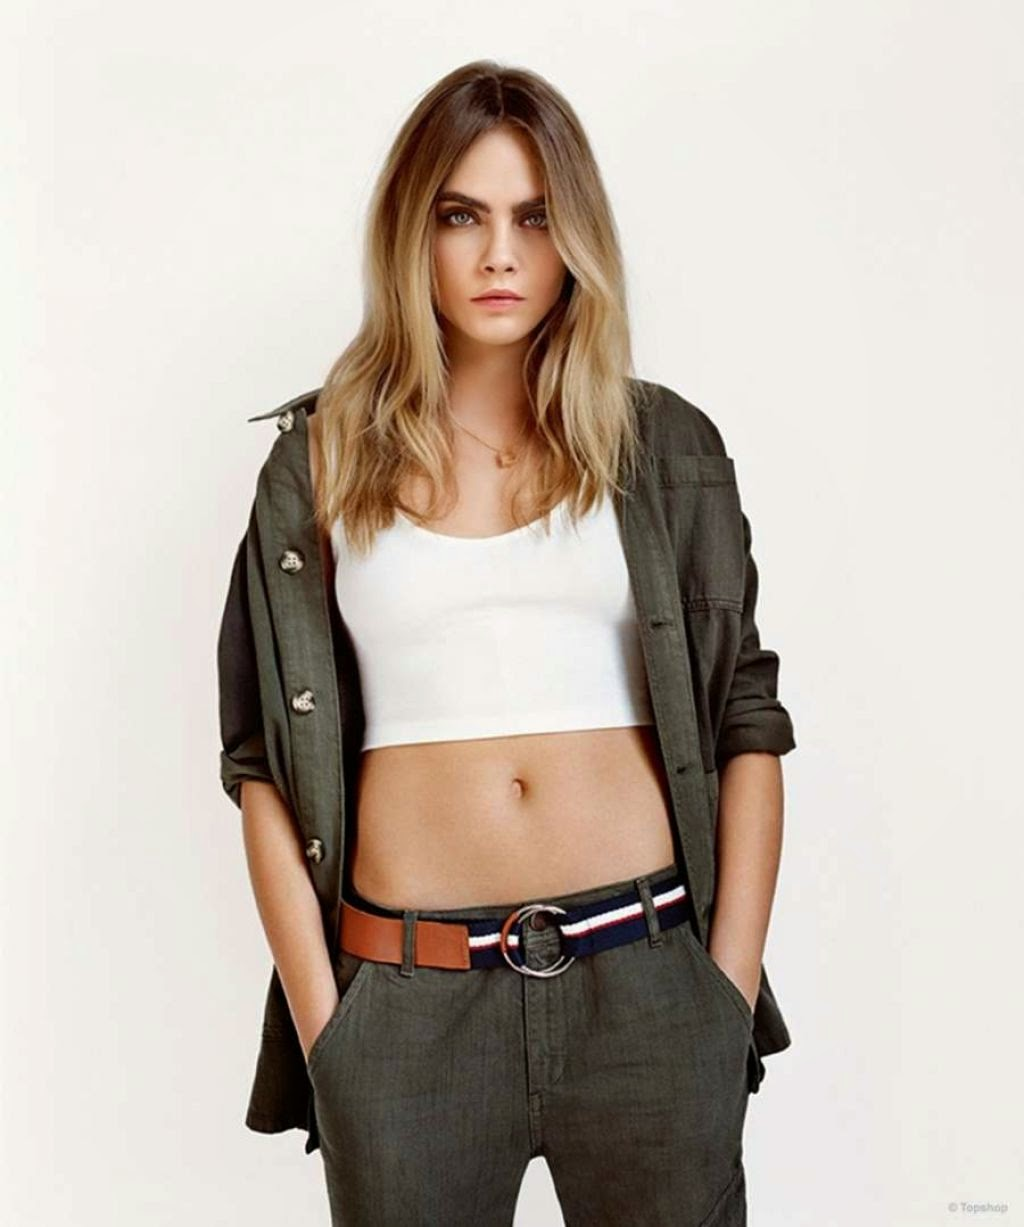 Topshop Spring/Summer 2015 Campaign featuring Cara Delevingne